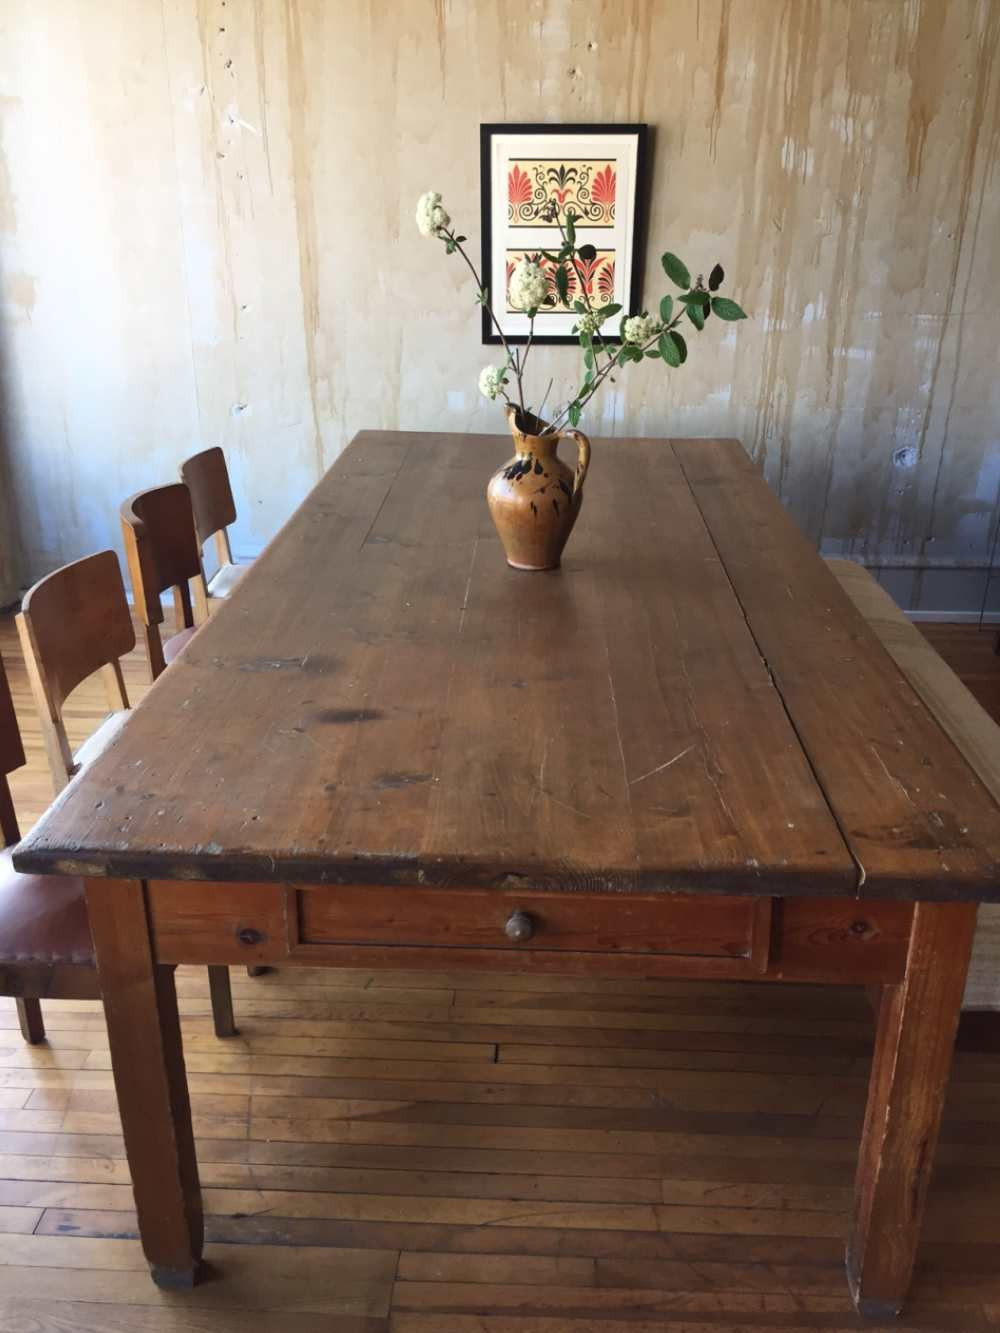 antique dining table … soldantique tuscan with pineapple legs double and chairs ebay room sets leg styles drop leaf leaves